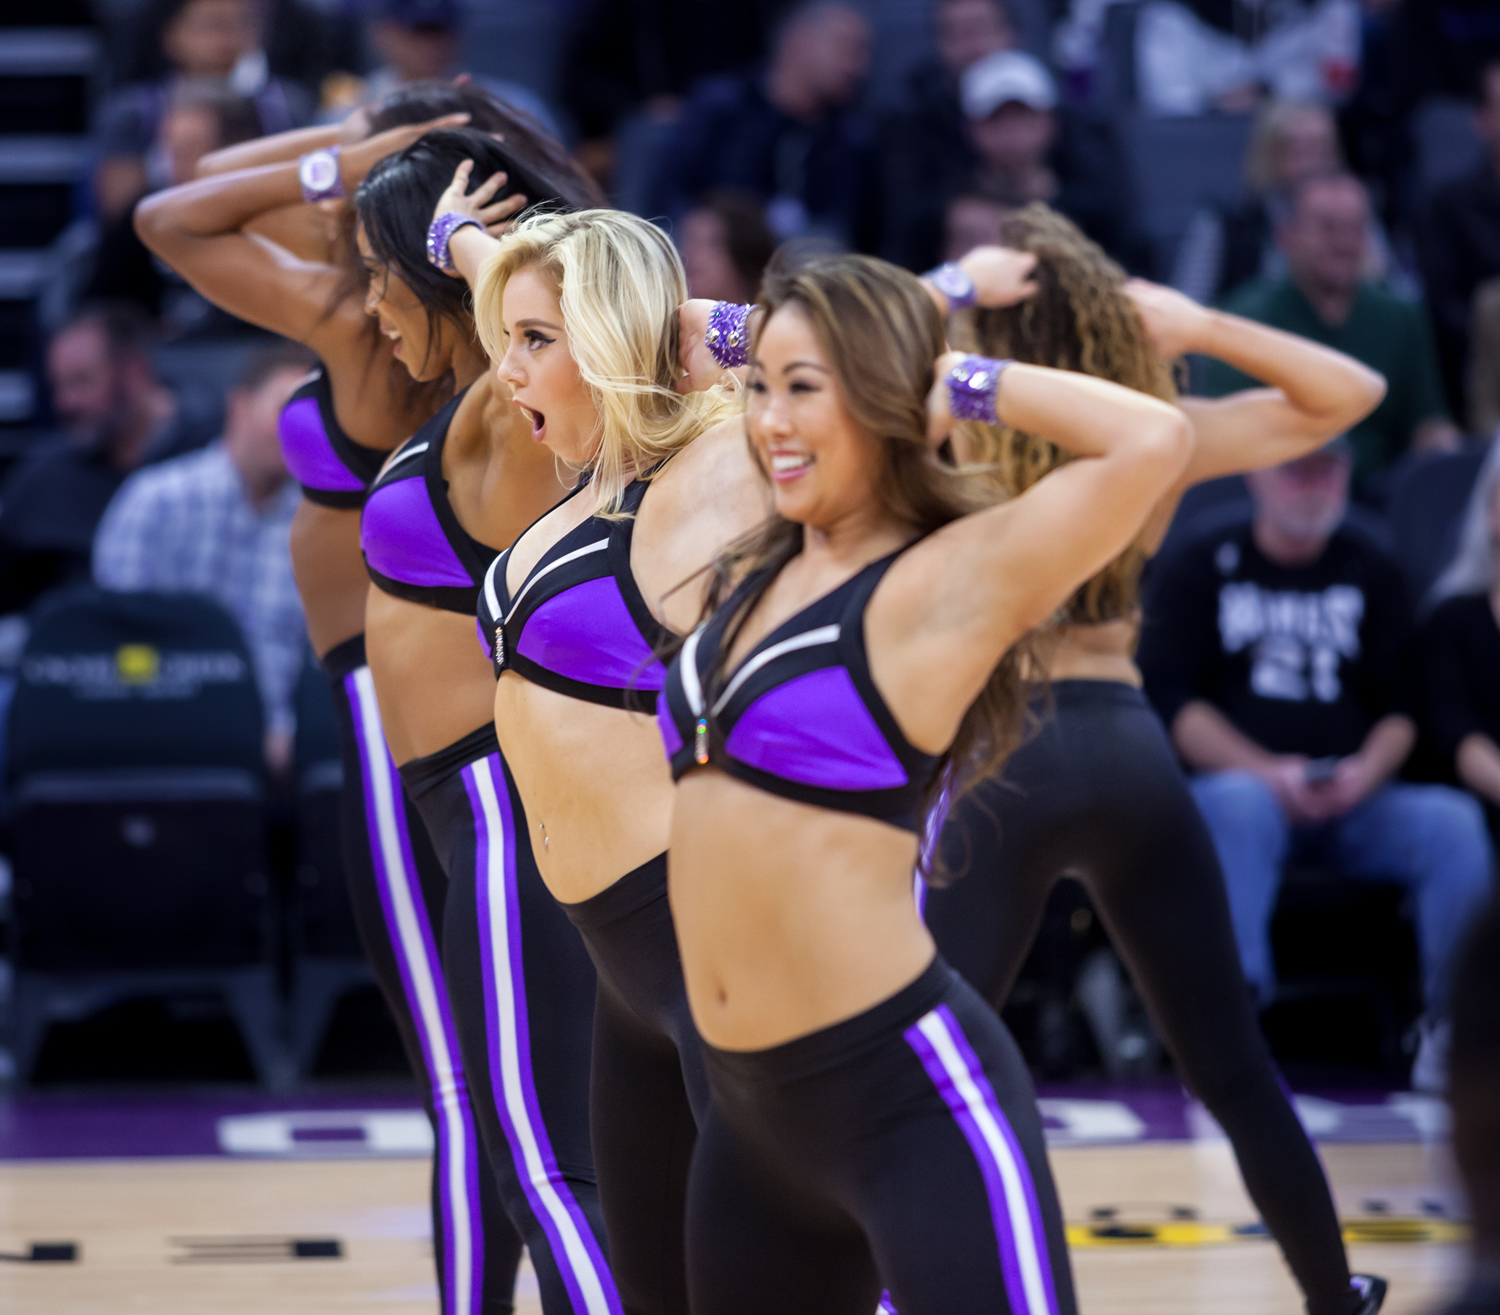 @kings_dancers